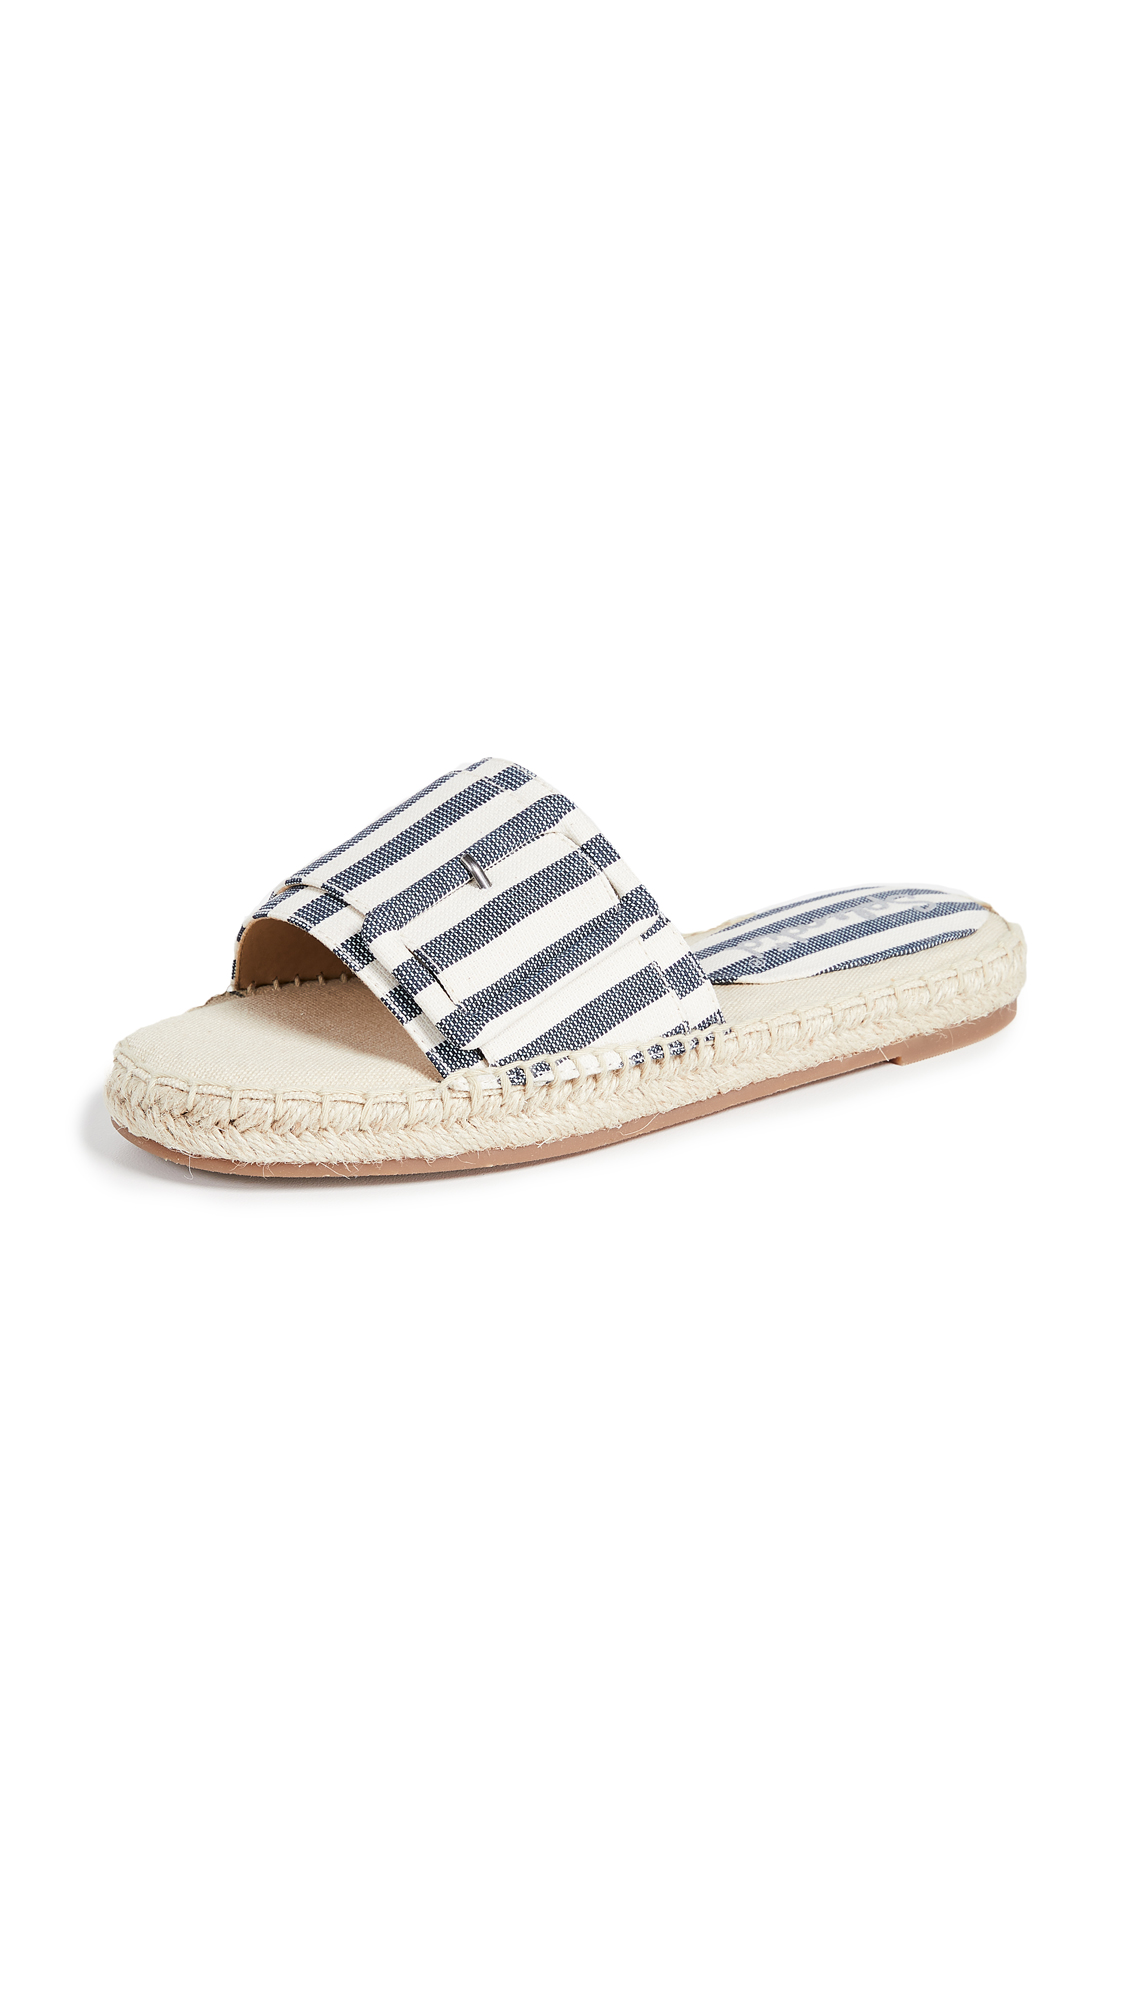 Splendid Simpson Espadrille Slides - Navy/Natural